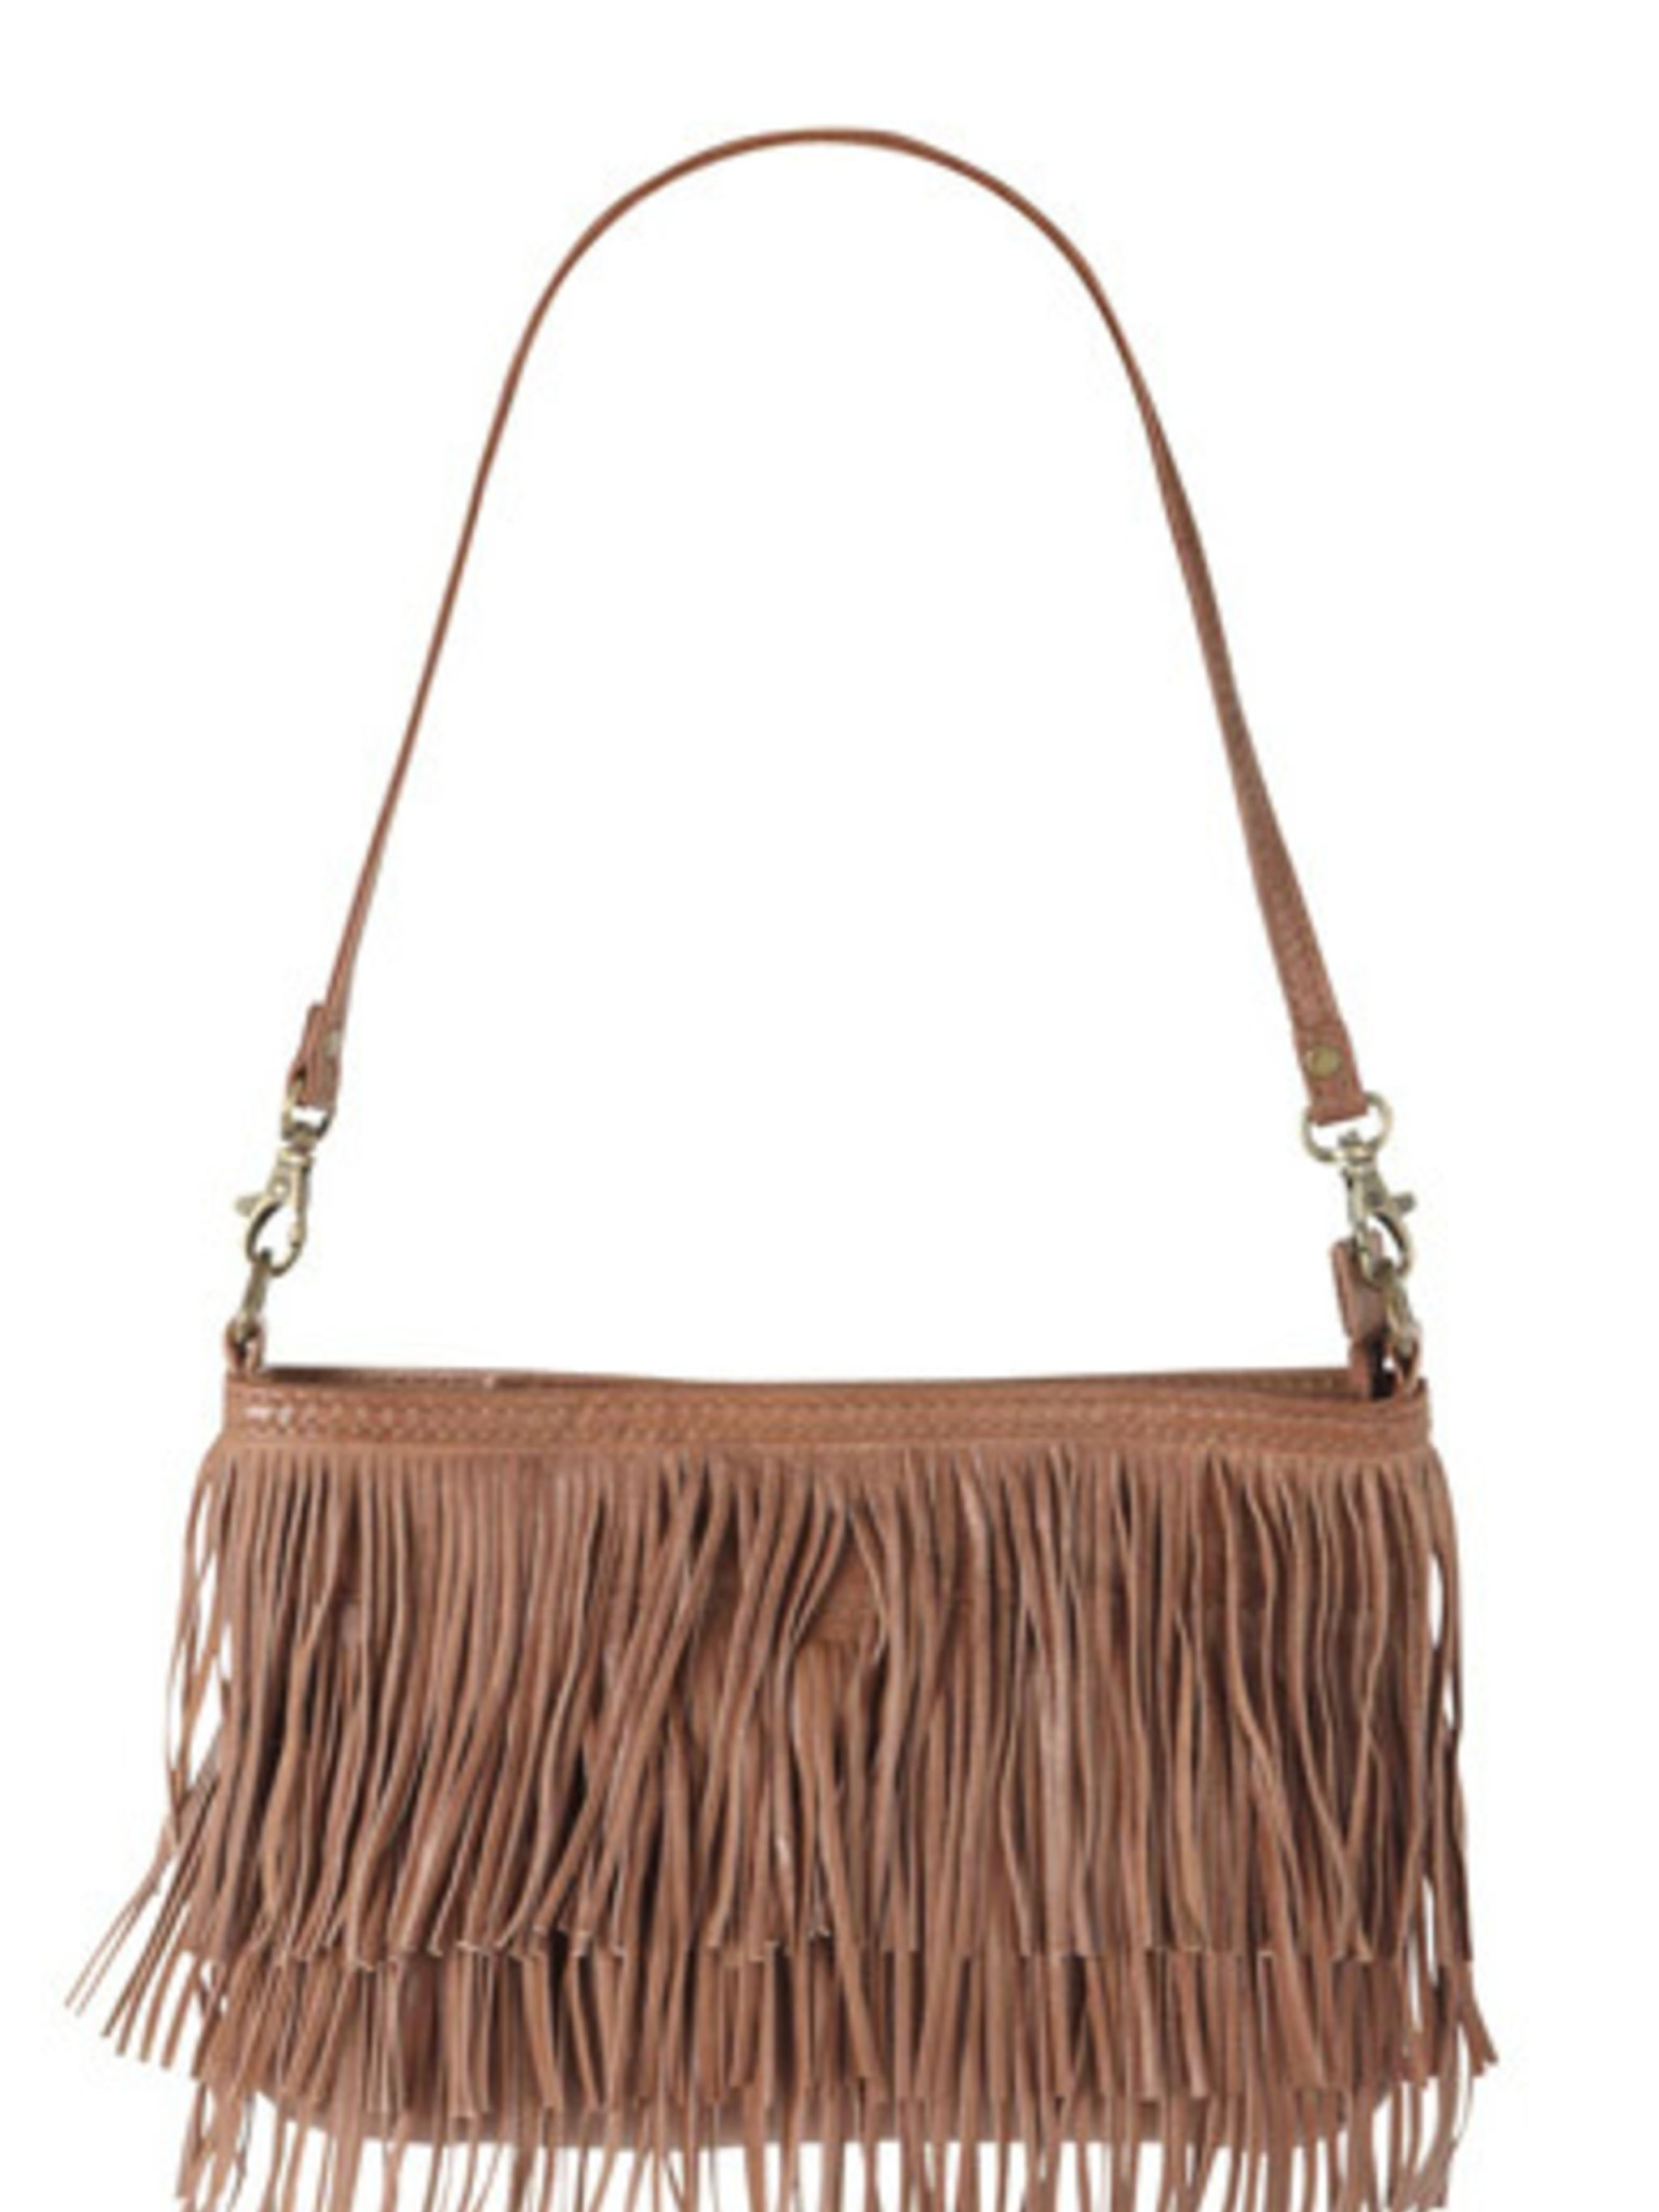 <p>If you're thinking about attempting the double denim look, make sure you pair those blue hues with this Americana-style tassel bag from Oasis. It will come in handy paired with floral tea dresses and wellies at all those festivals this summer too.</p><